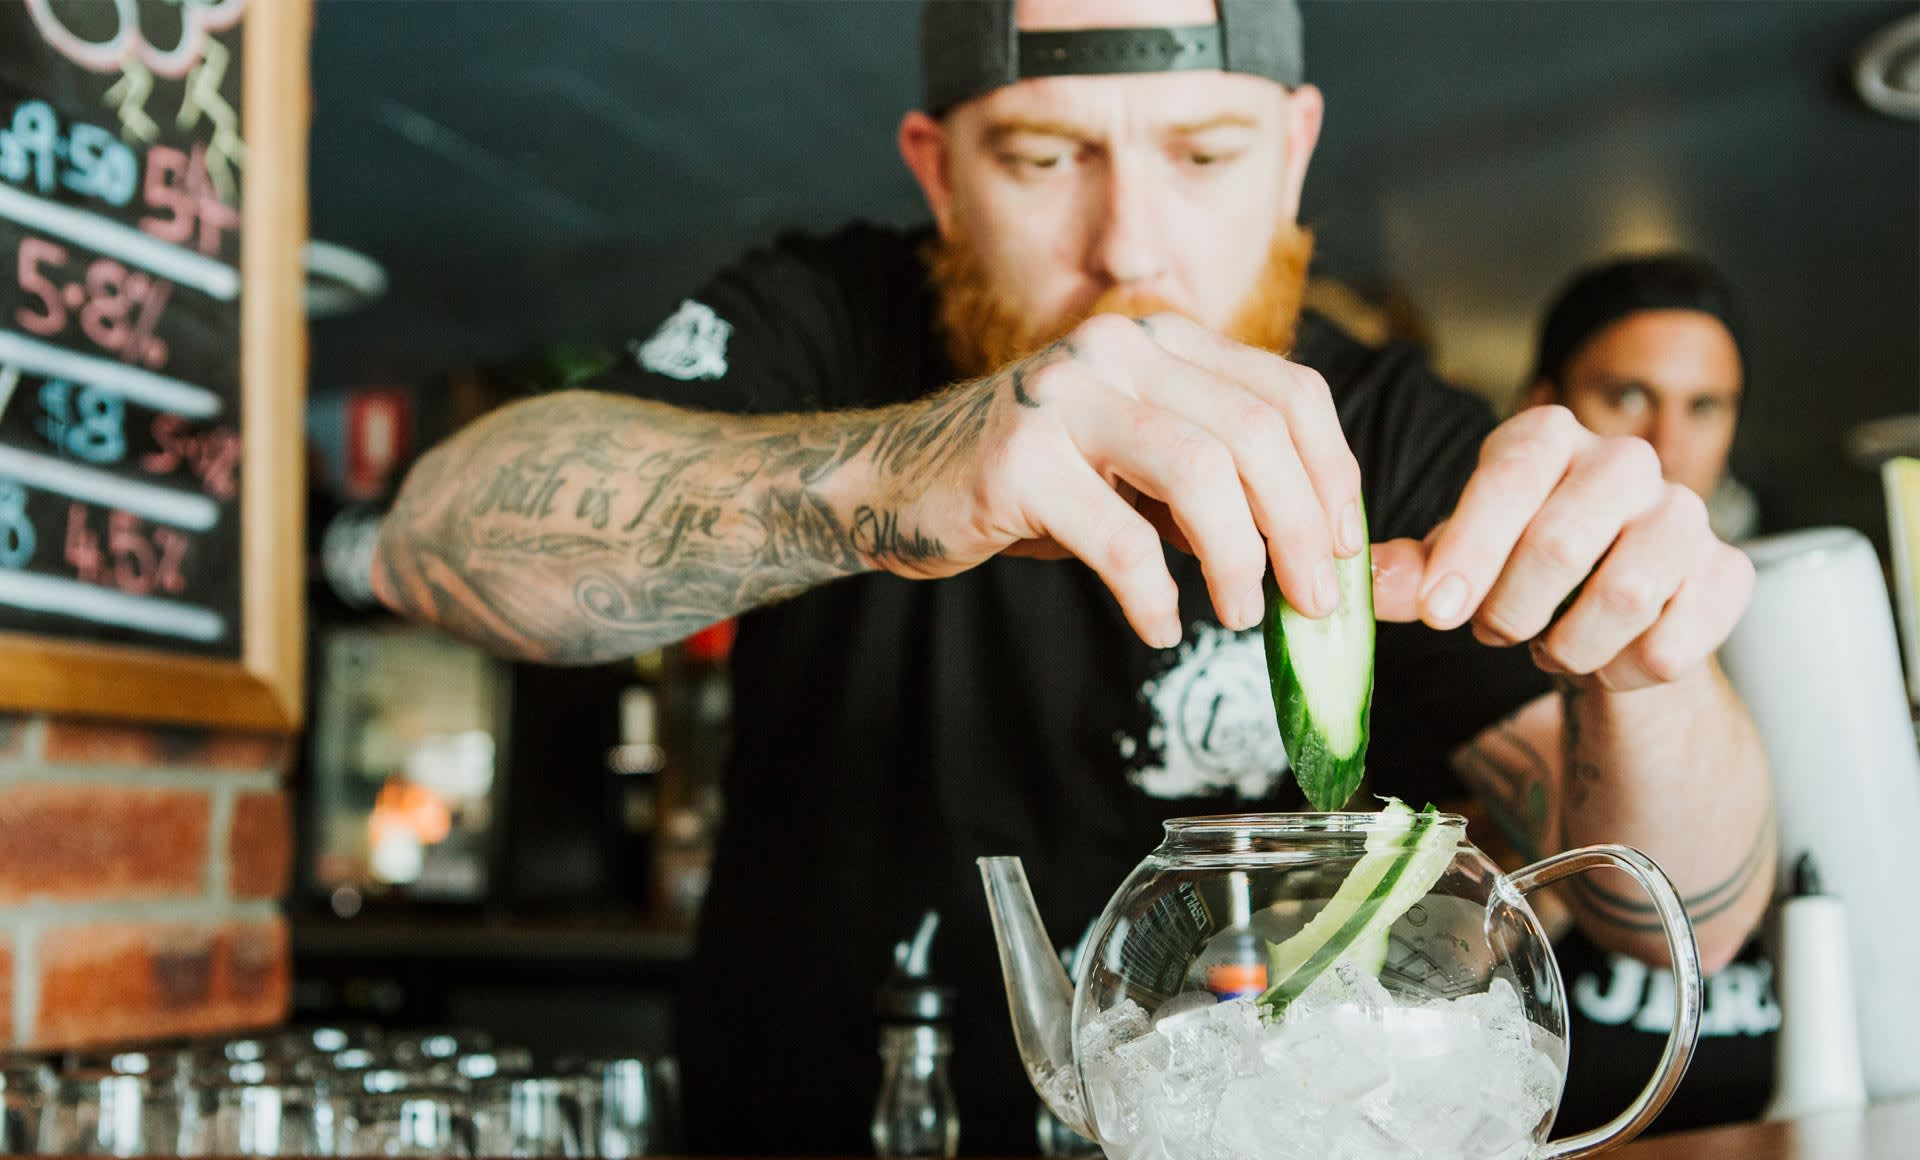 Best bars and restaurants in Mooloolaba and Maroochydore